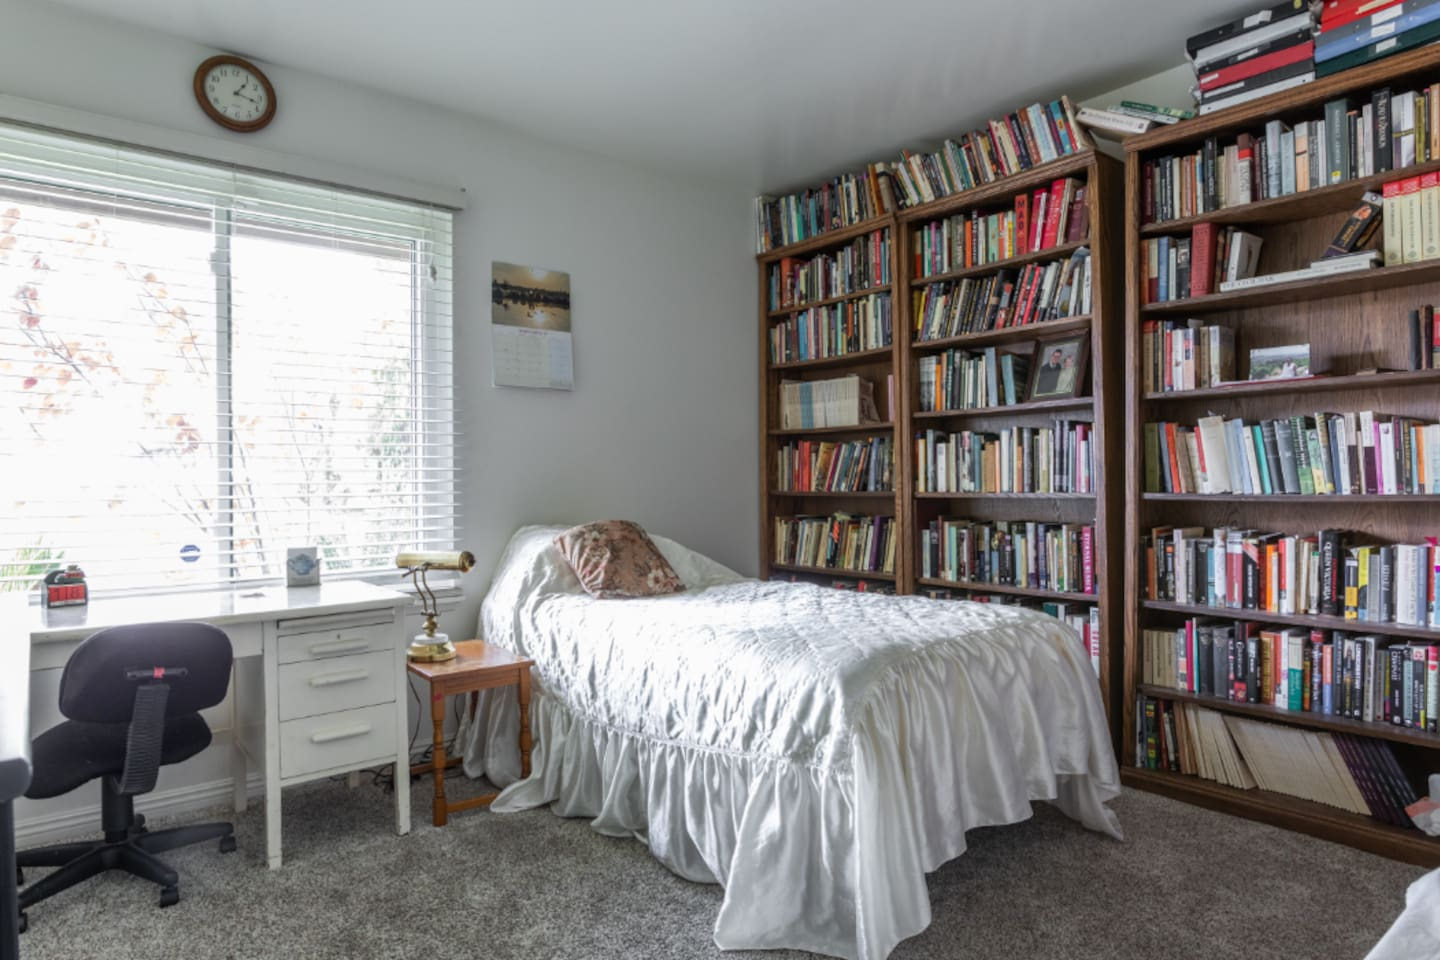 Private single room in remodeled home